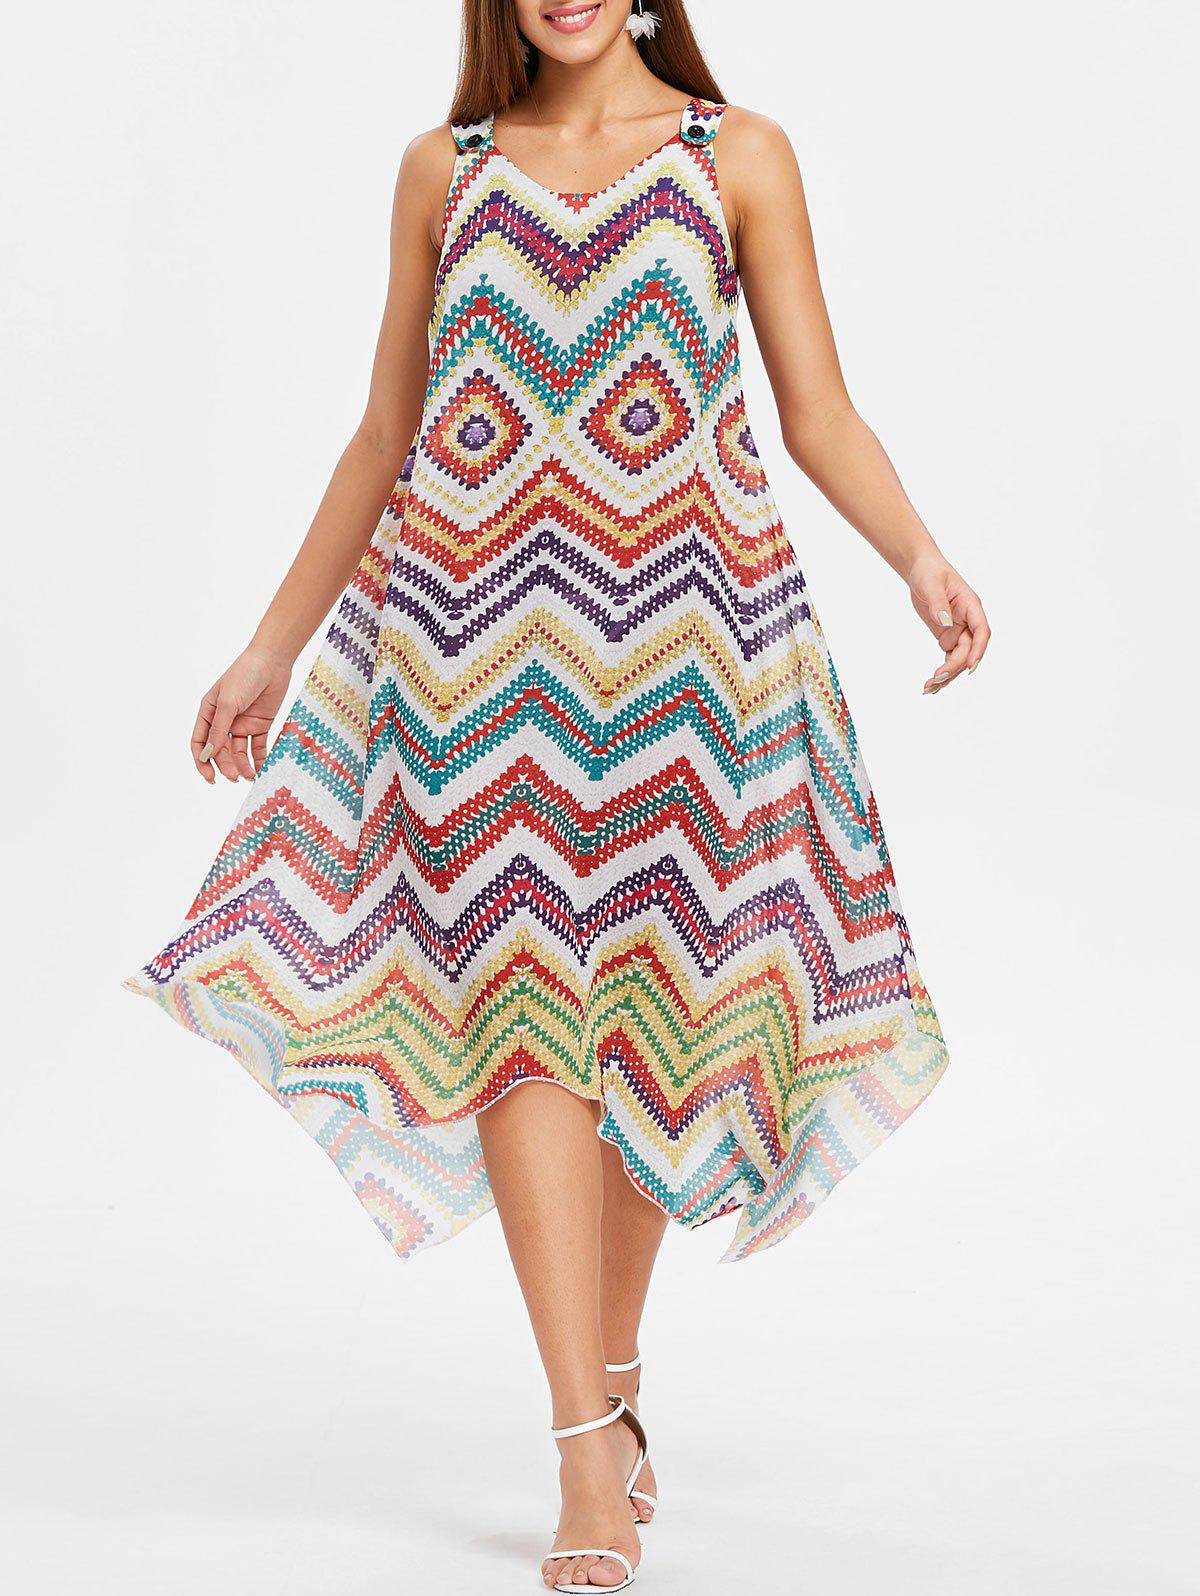 fd602ff13 58% OFF   2019 Zigzag Scoop Neck Asymmetrical Dress